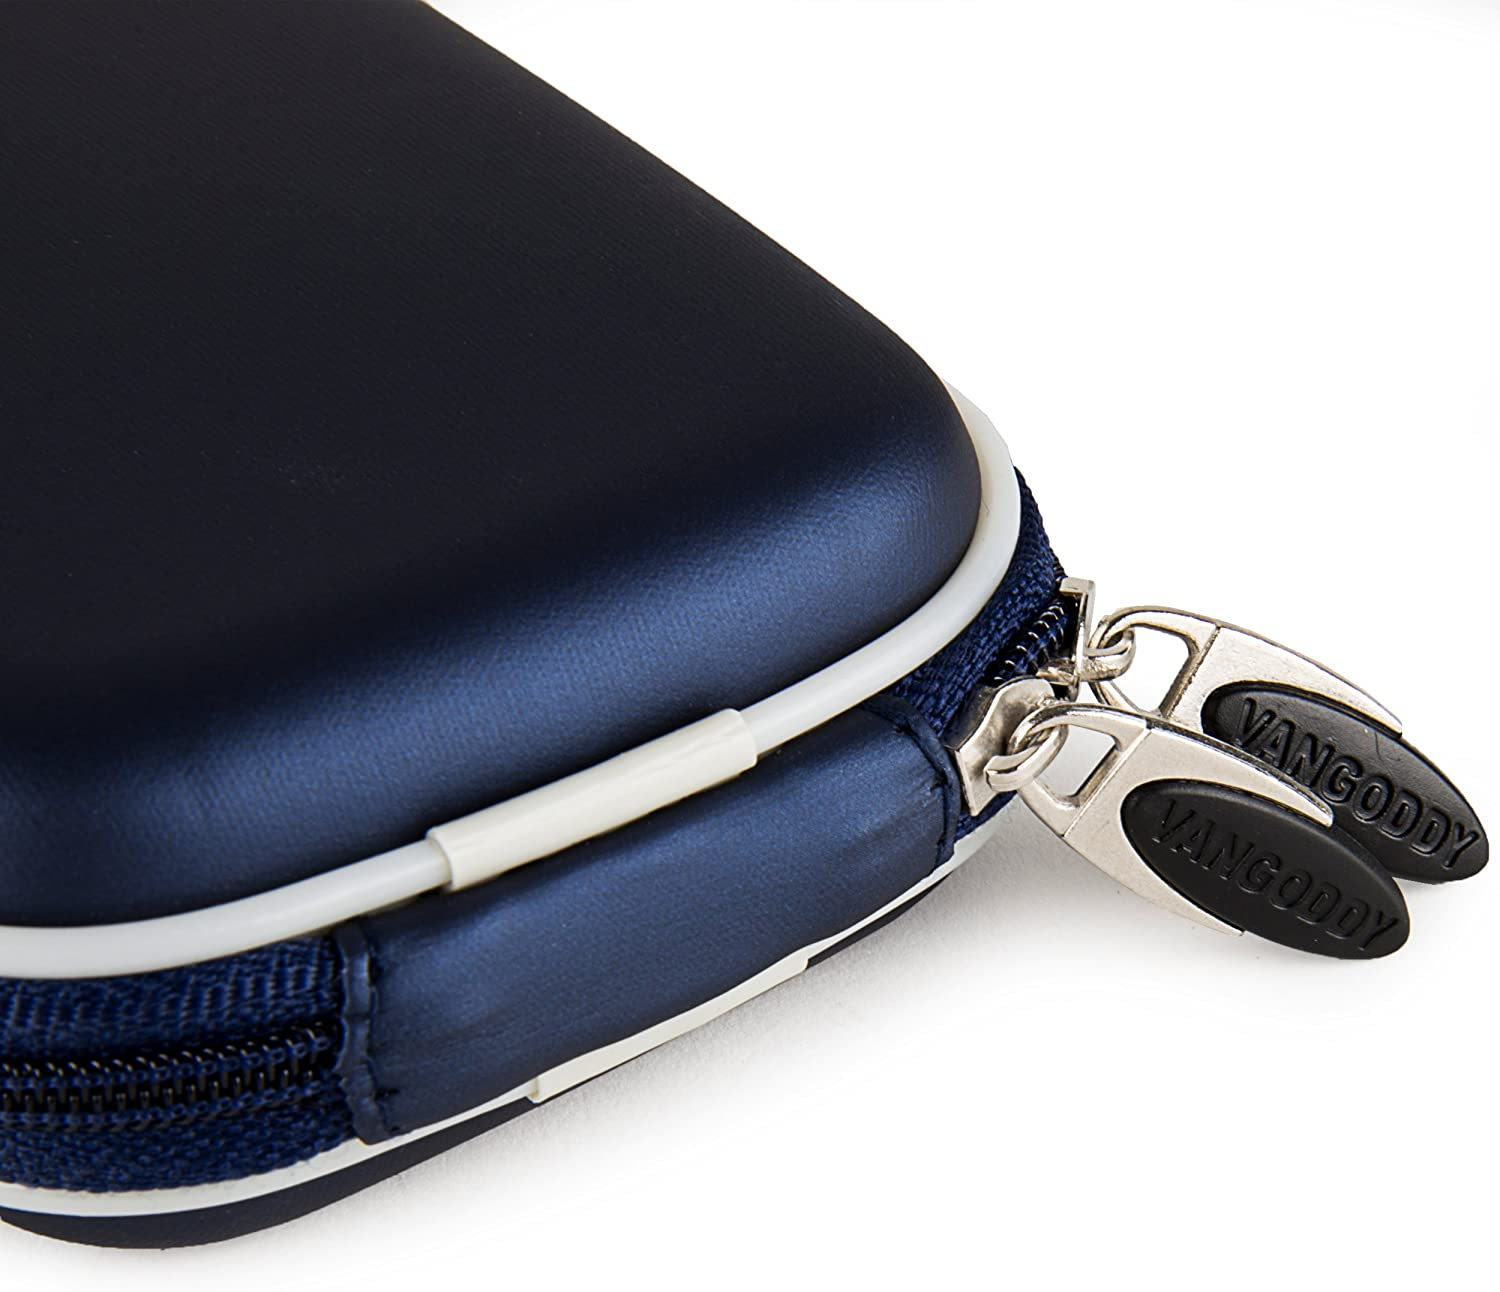 VanGoddy Semi Hard EVA Carrying Case for Ivation IV WPDC20 Waterproof Digital Camera and Screen Protector Navy Blue